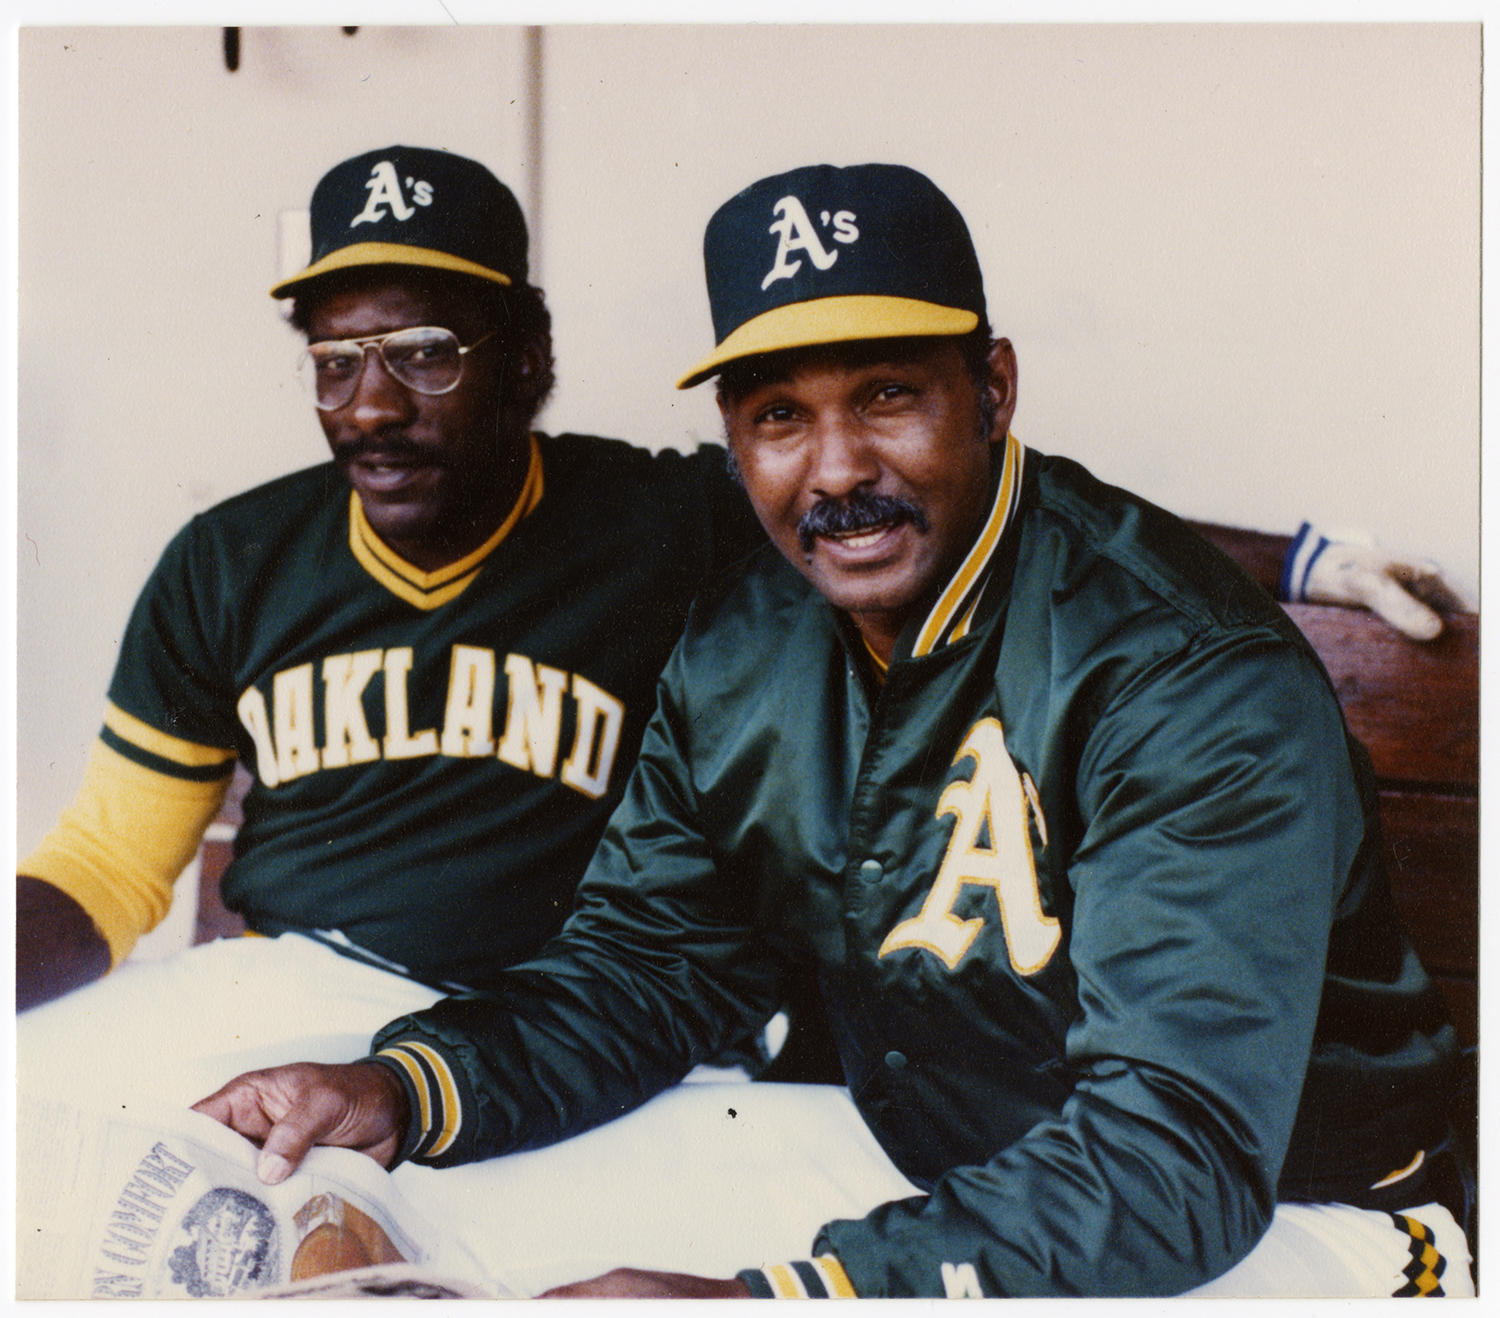 After playing for the Oakland Athletics for the final two years of his major league career, Billy Williams (right) returned to the team as a coach from 1983-1985. He's pictured above with A's designated hitter Mitchell Page. (Doug McWilliams / National Baseball Hall of Fame and Museum)